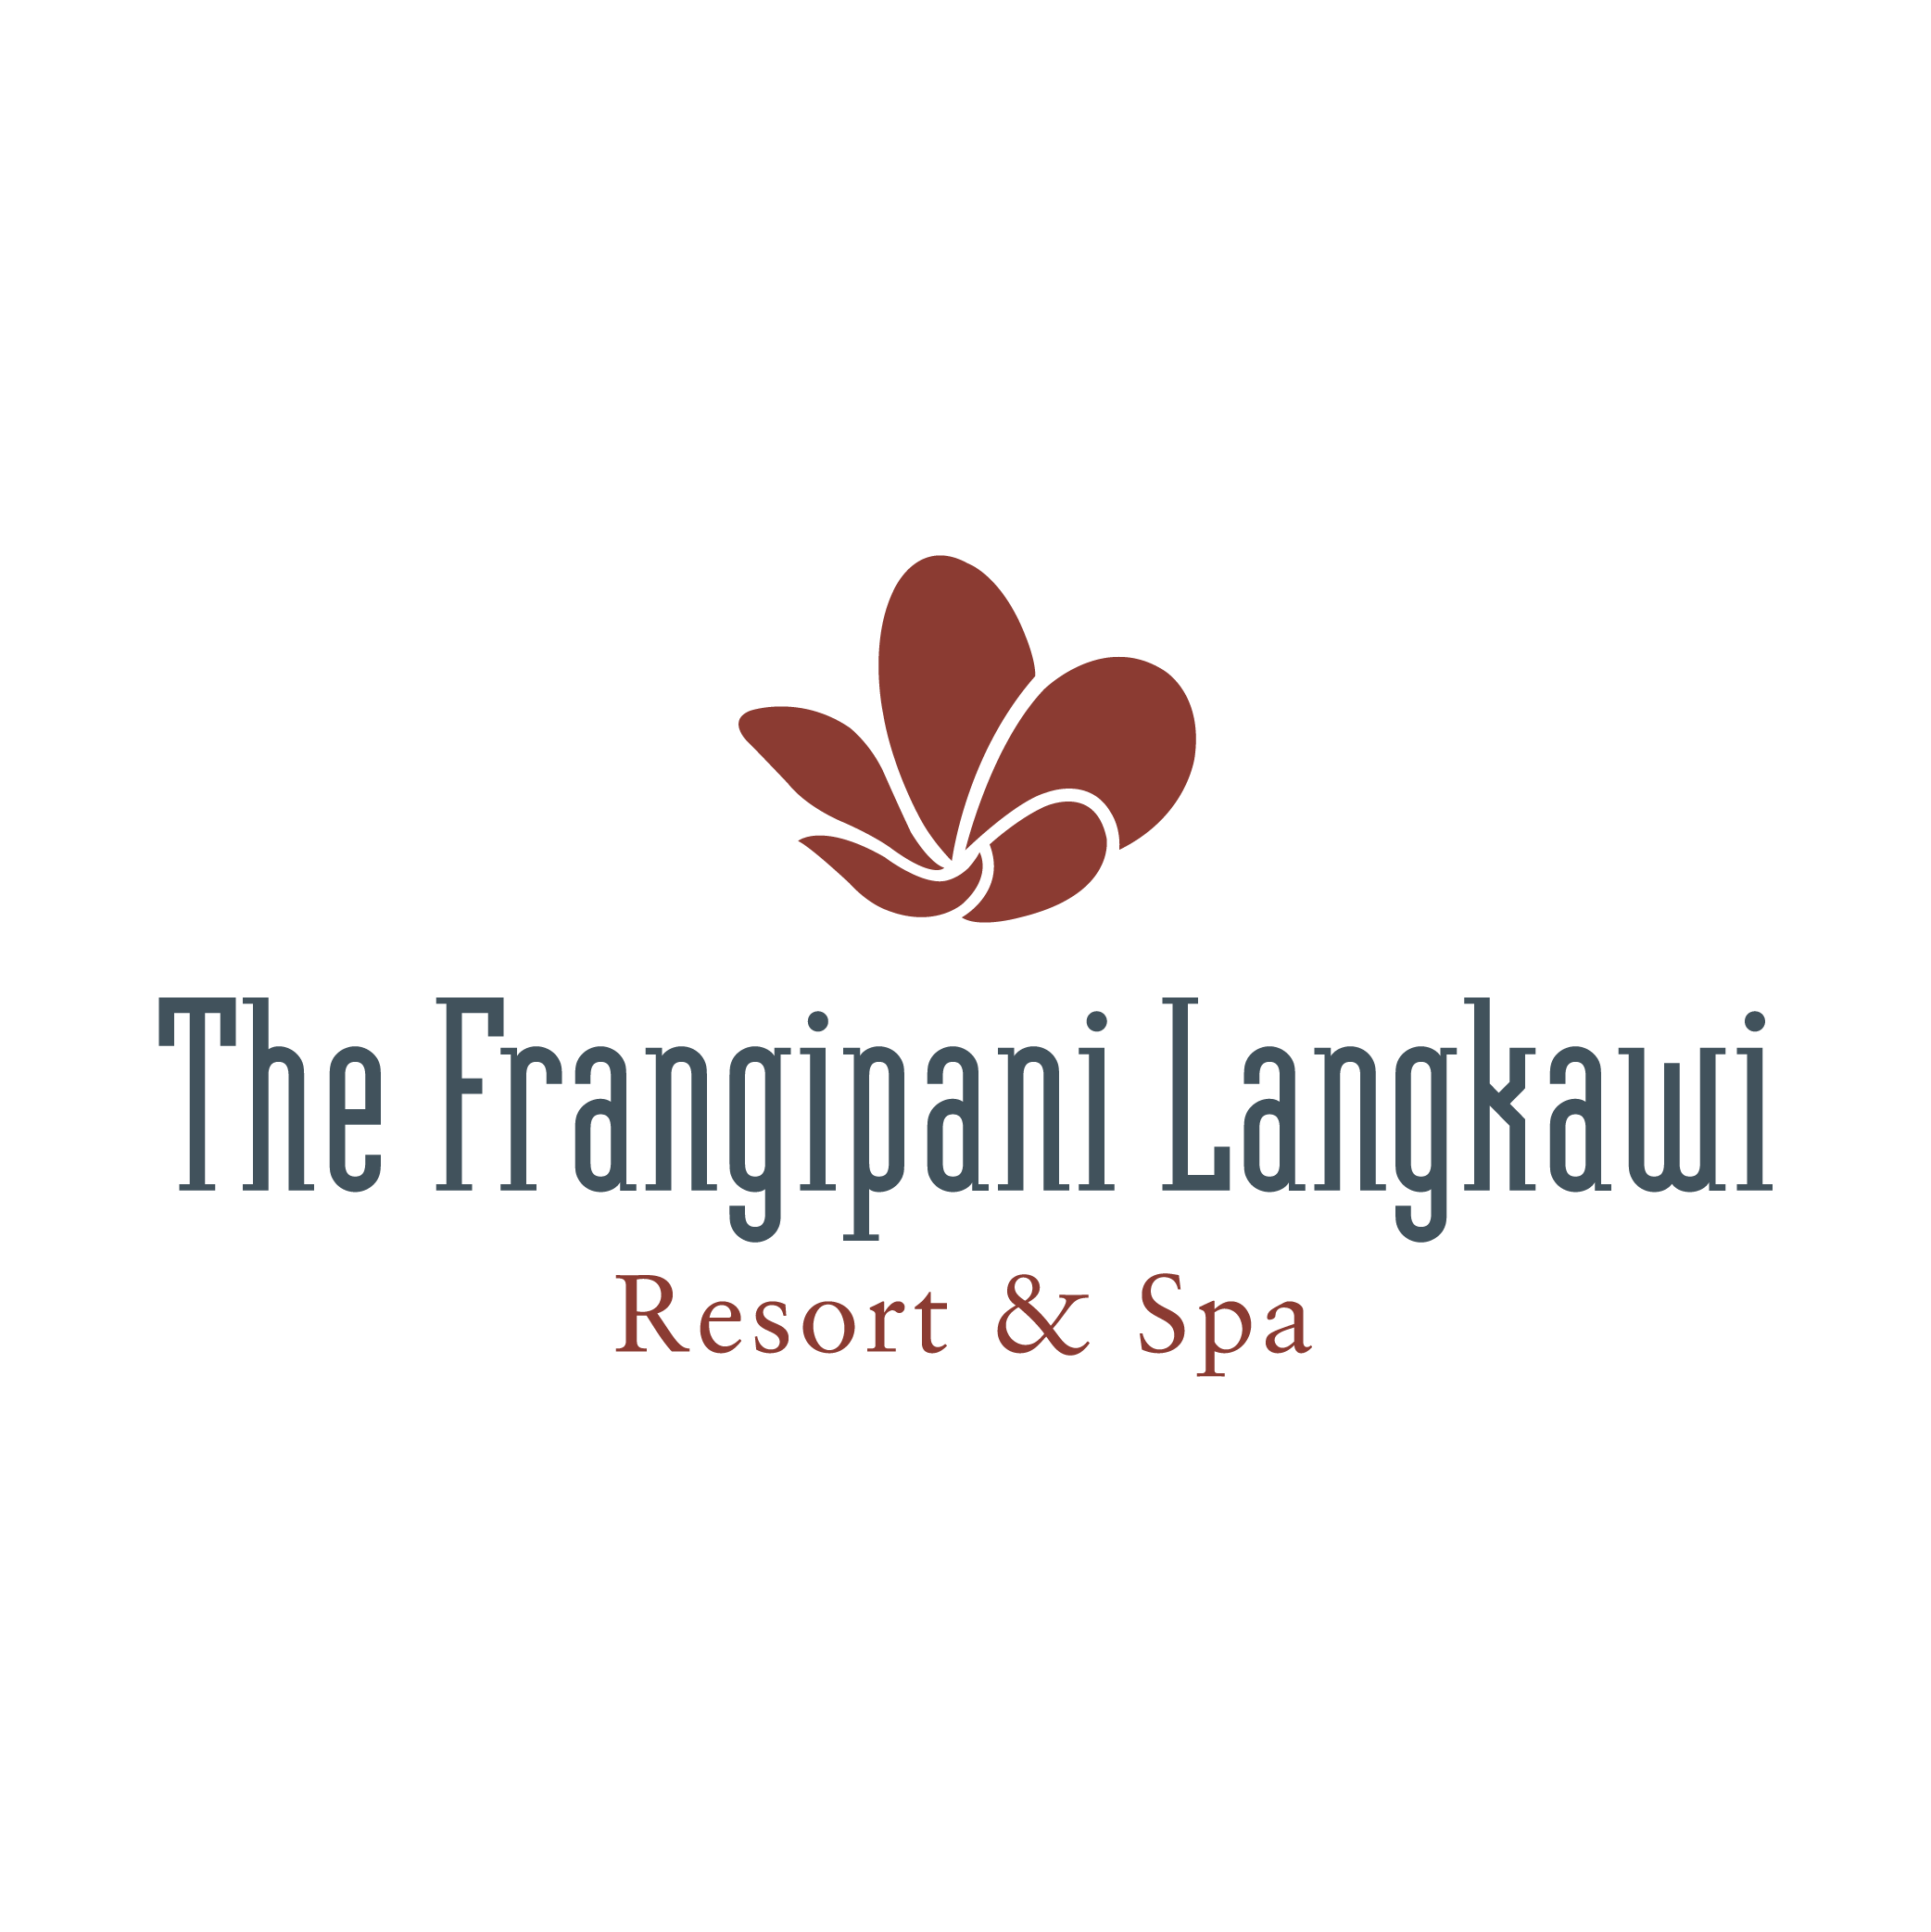 200219_ logo for website_Frangipani Langkawi